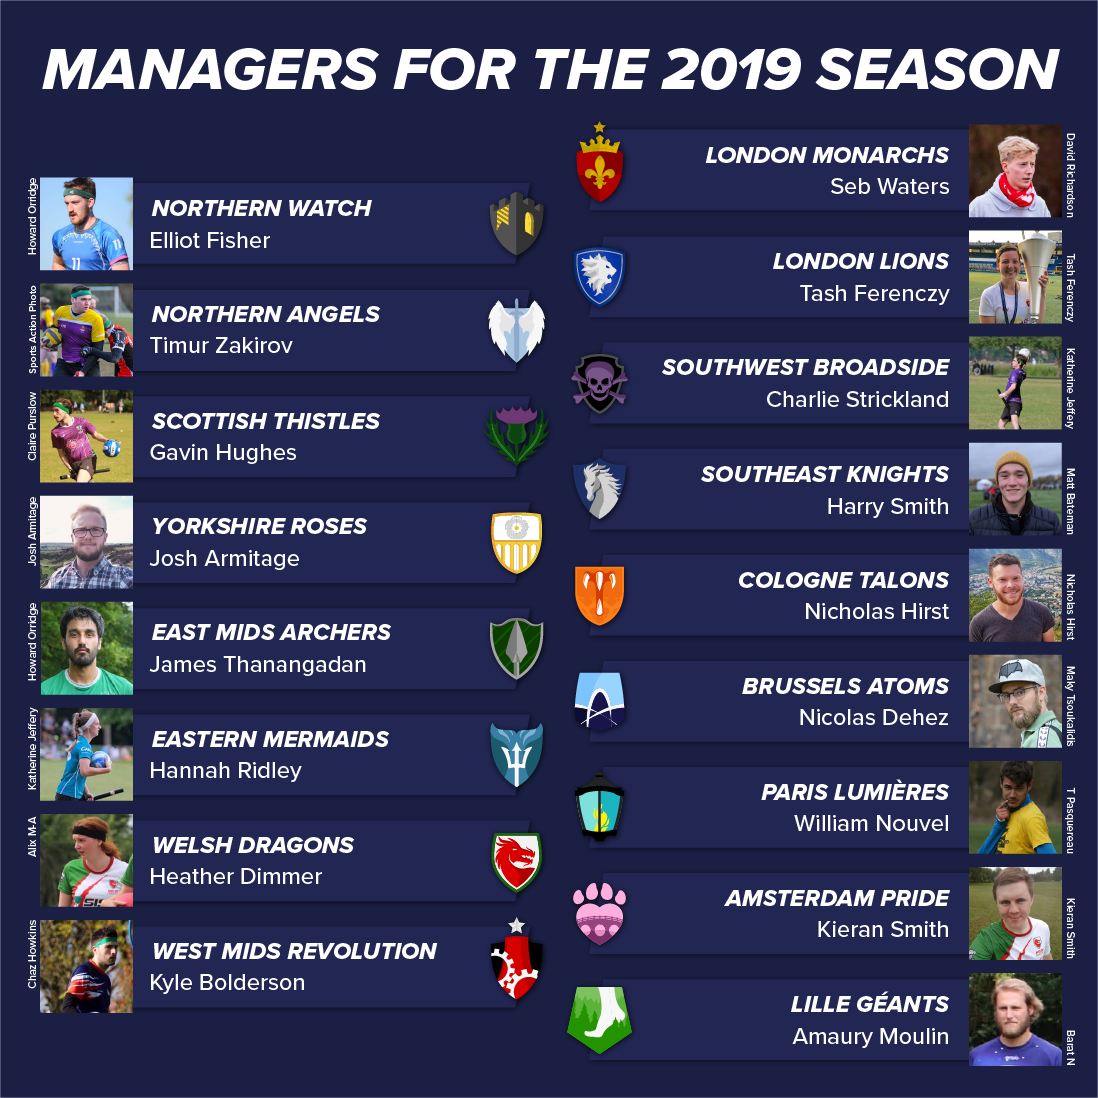 Managers 2019 Announcement - Artboard 1.png